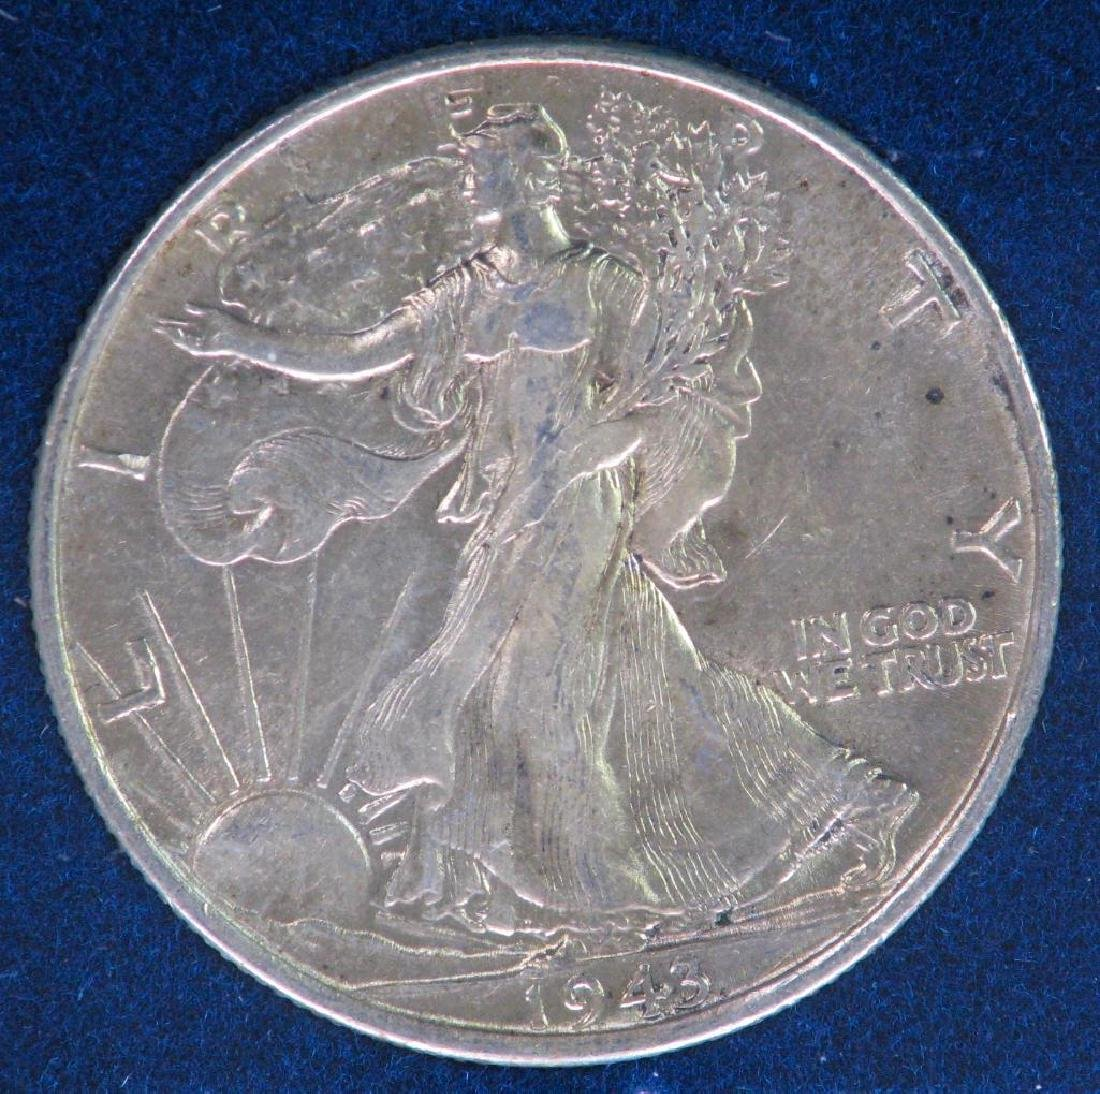 1943-P Walking Liberty Half Dollar - Uncirculated